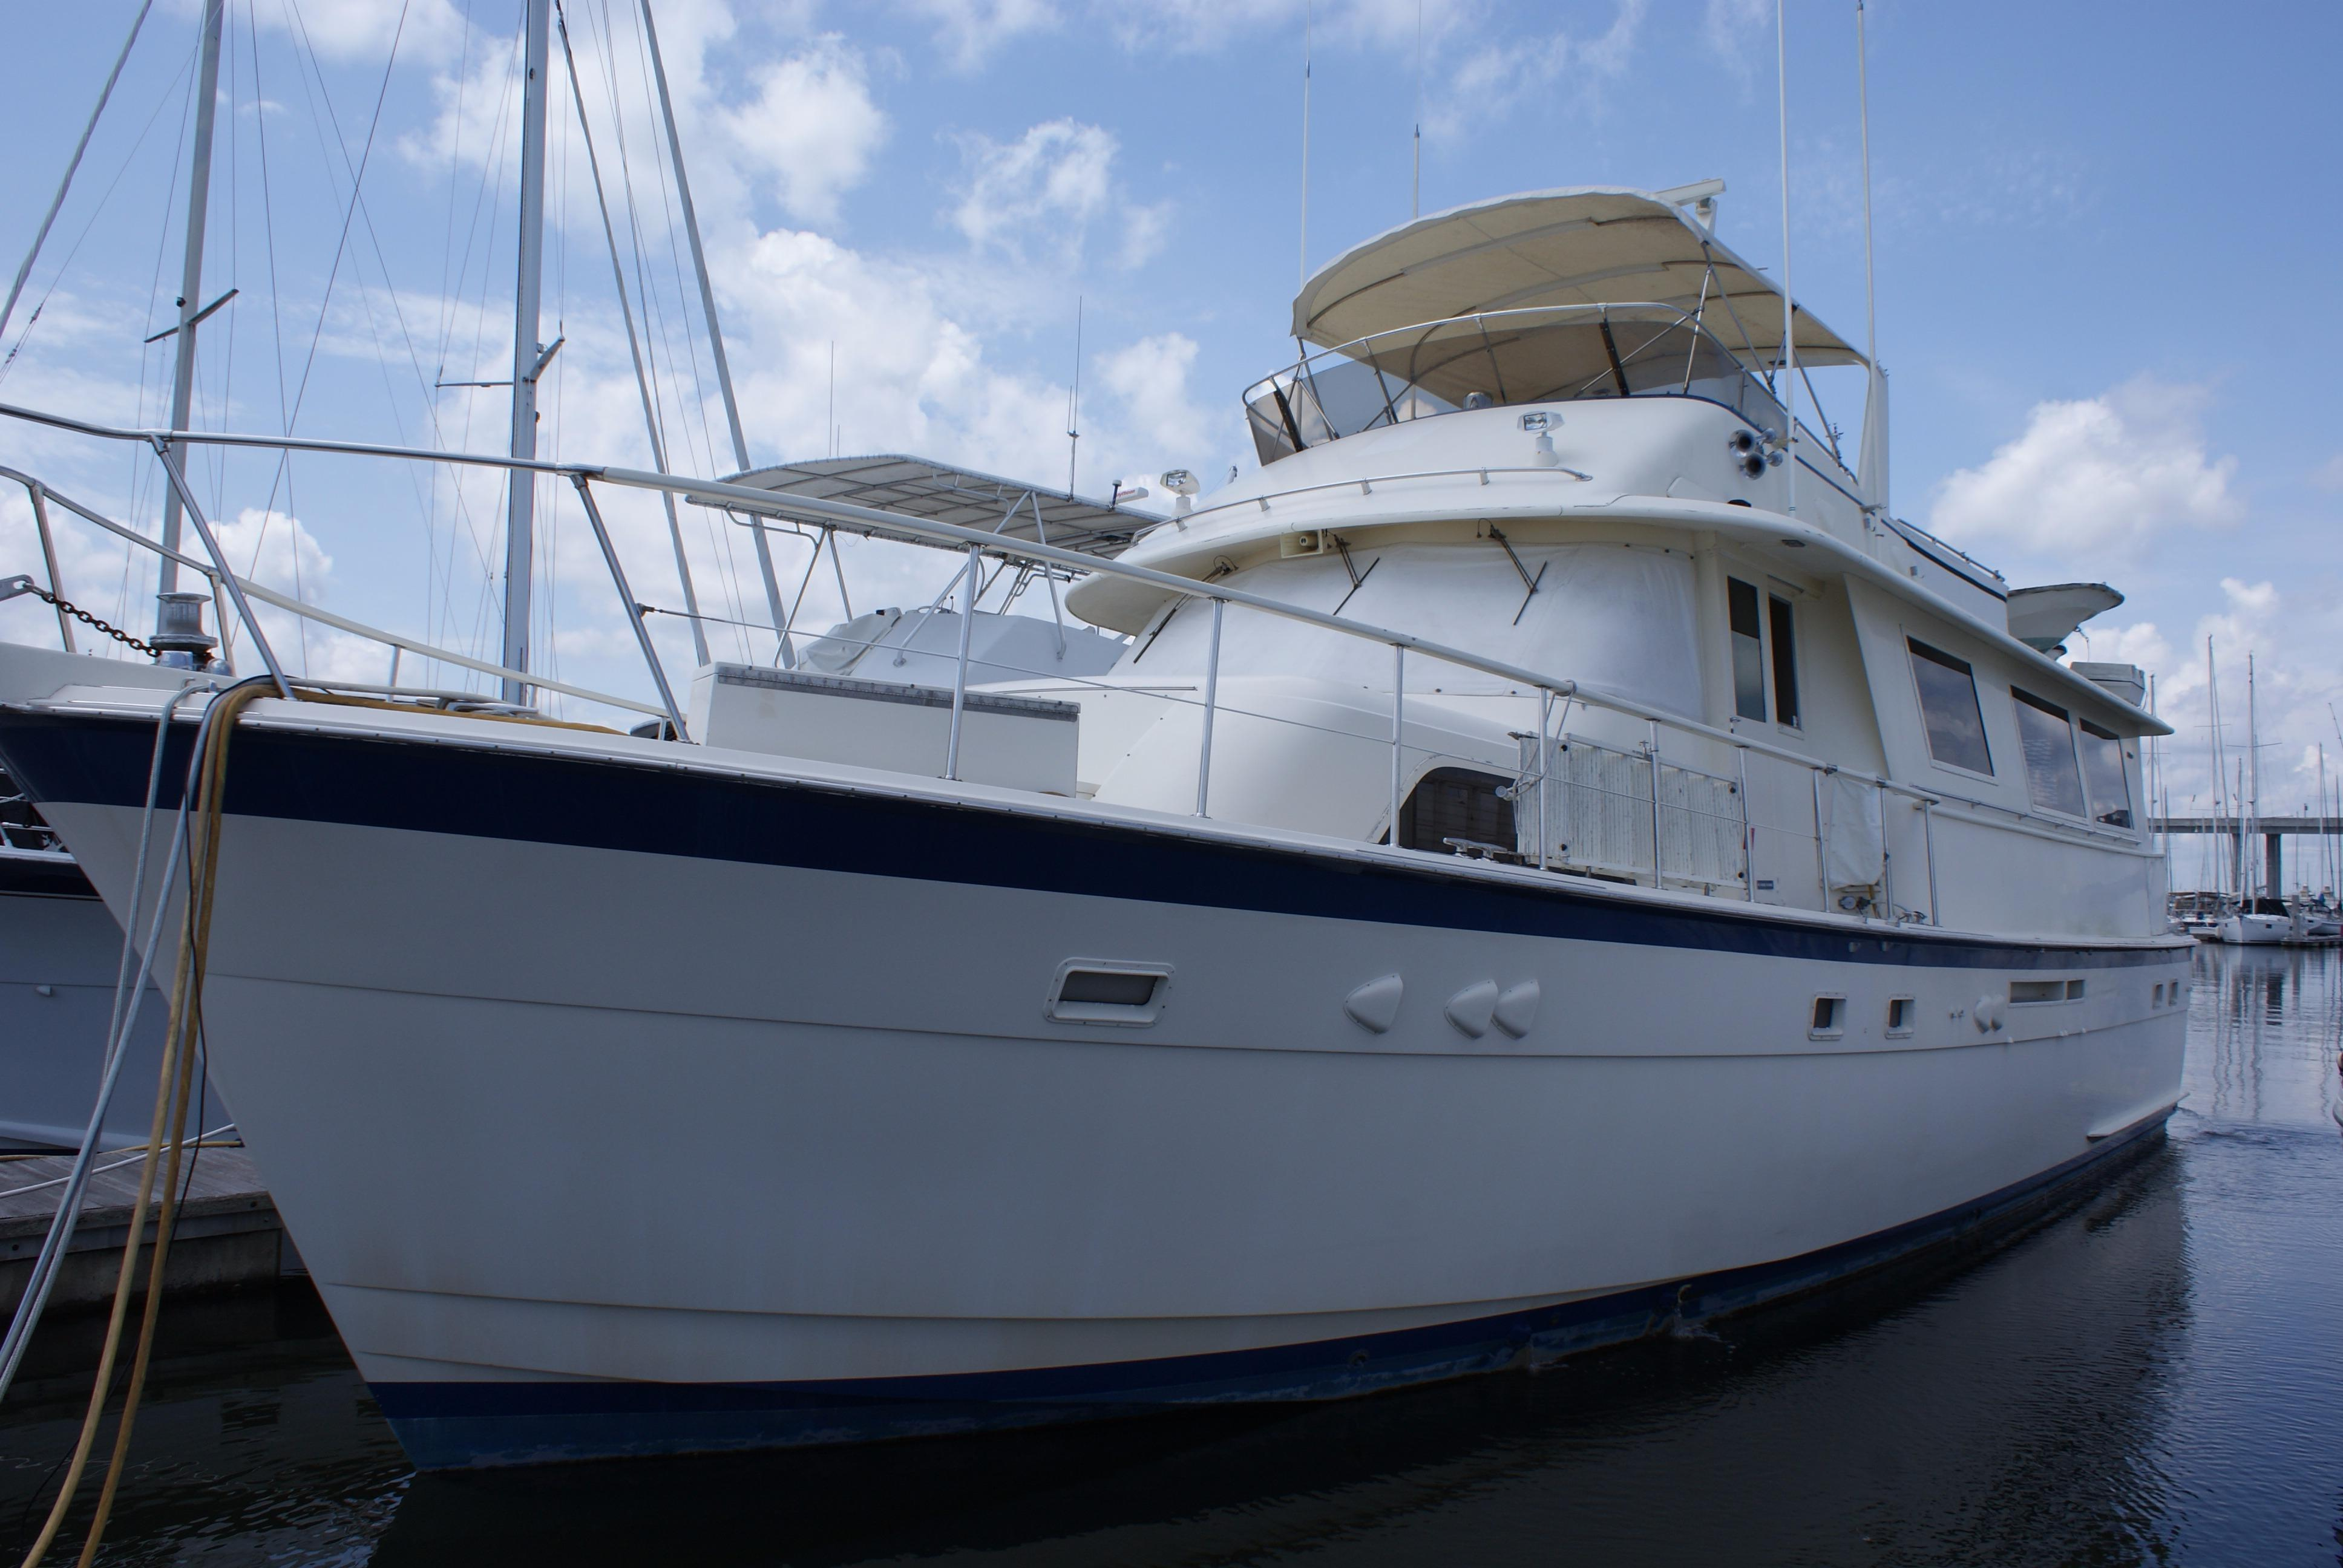 1985 hatteras 61 motor yacht for sale for Hatteras motor yacht for sale